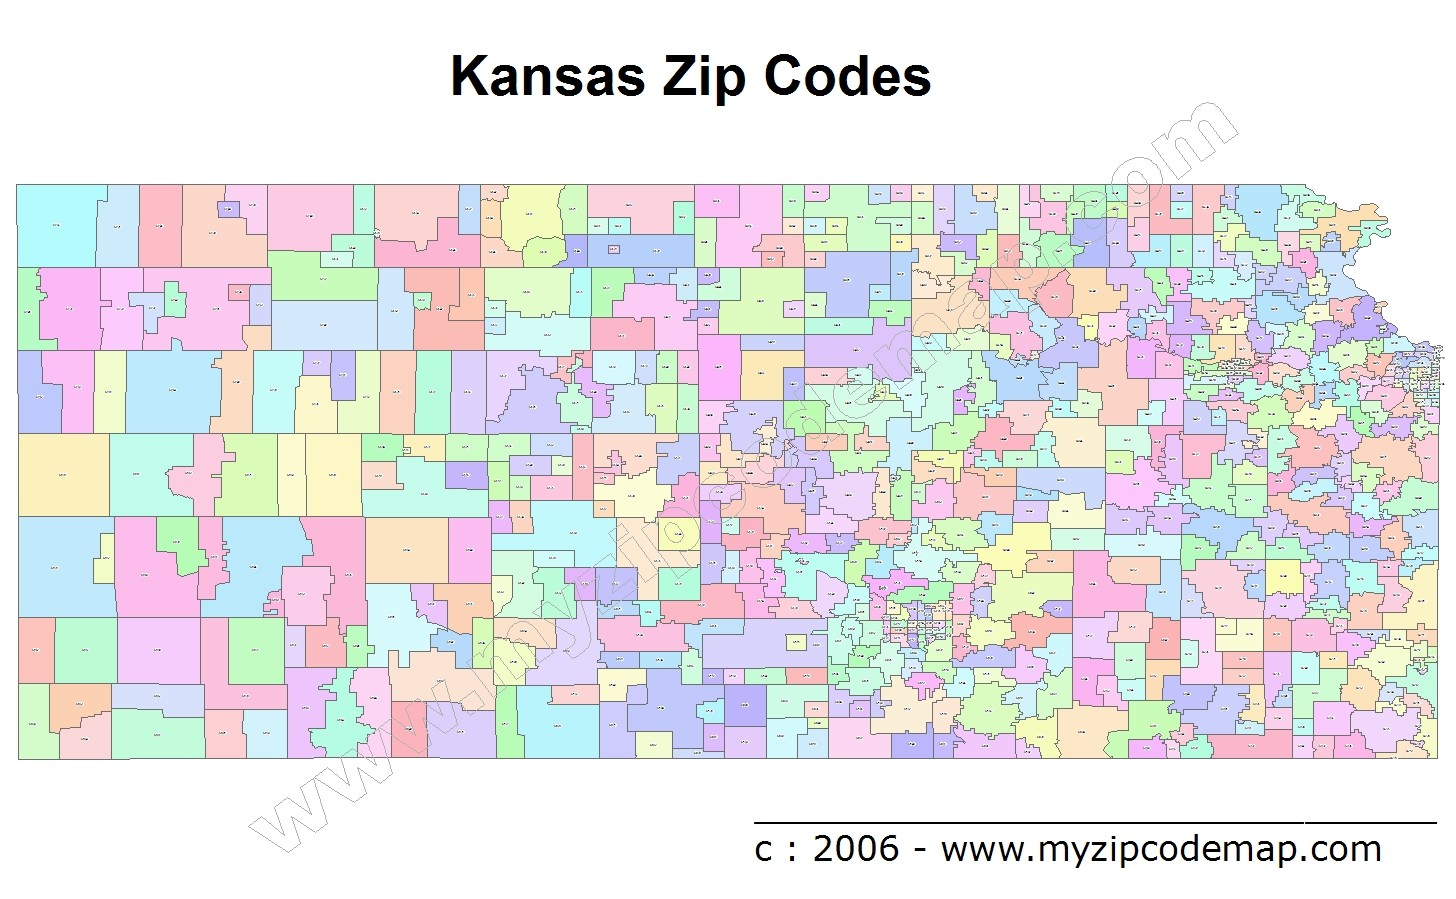 Kansas (KS) Zip Code Map